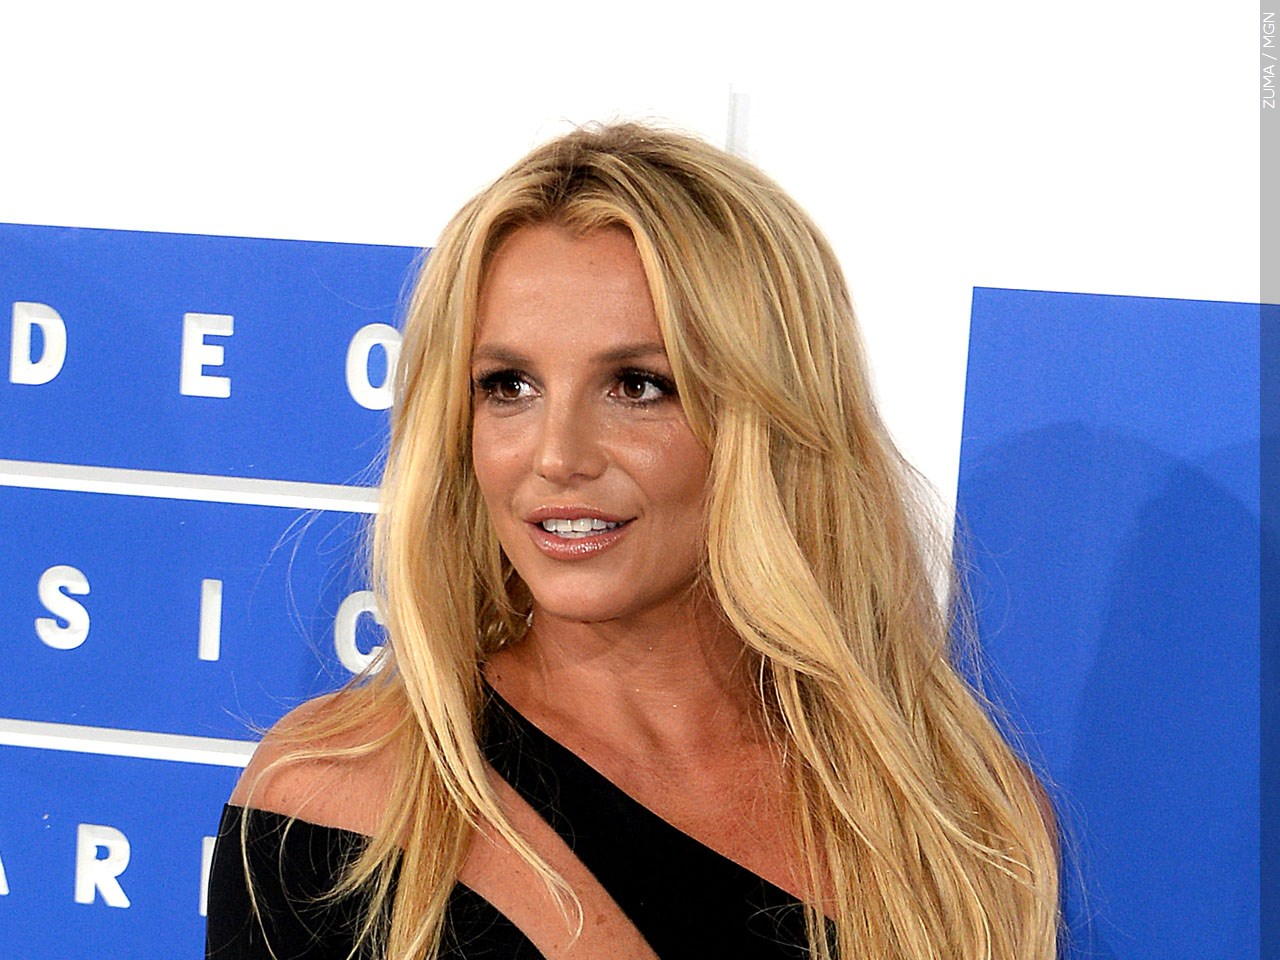 Spears' Attorney Looks To Speed Effort To Boot Singer's Father As Conservator